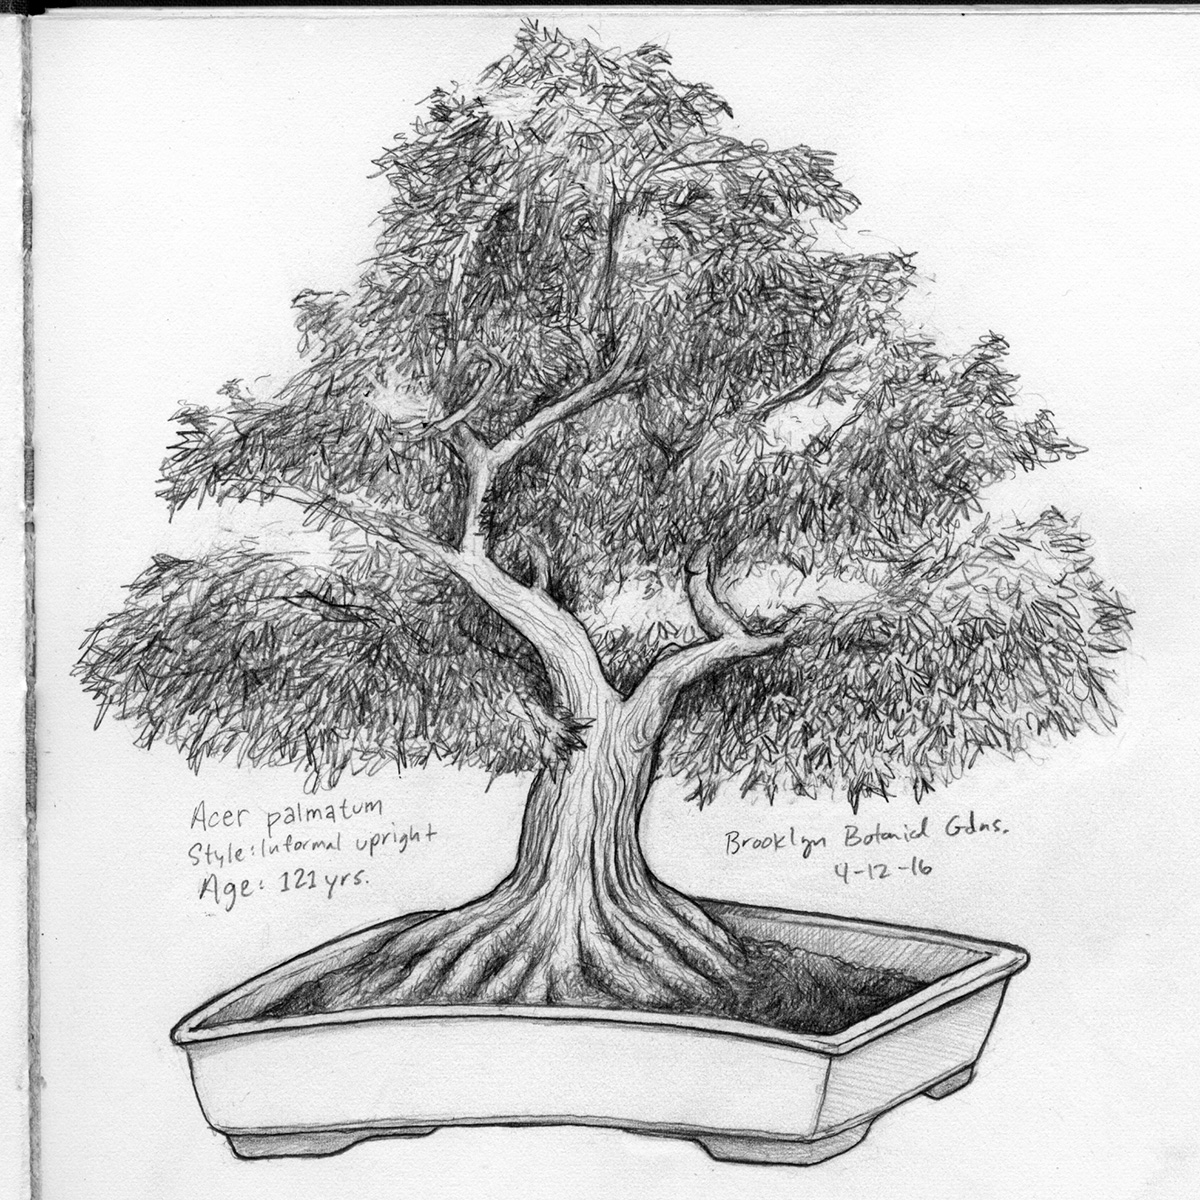 121 yr old bonsai - afterschool sketchbook outing with Willy